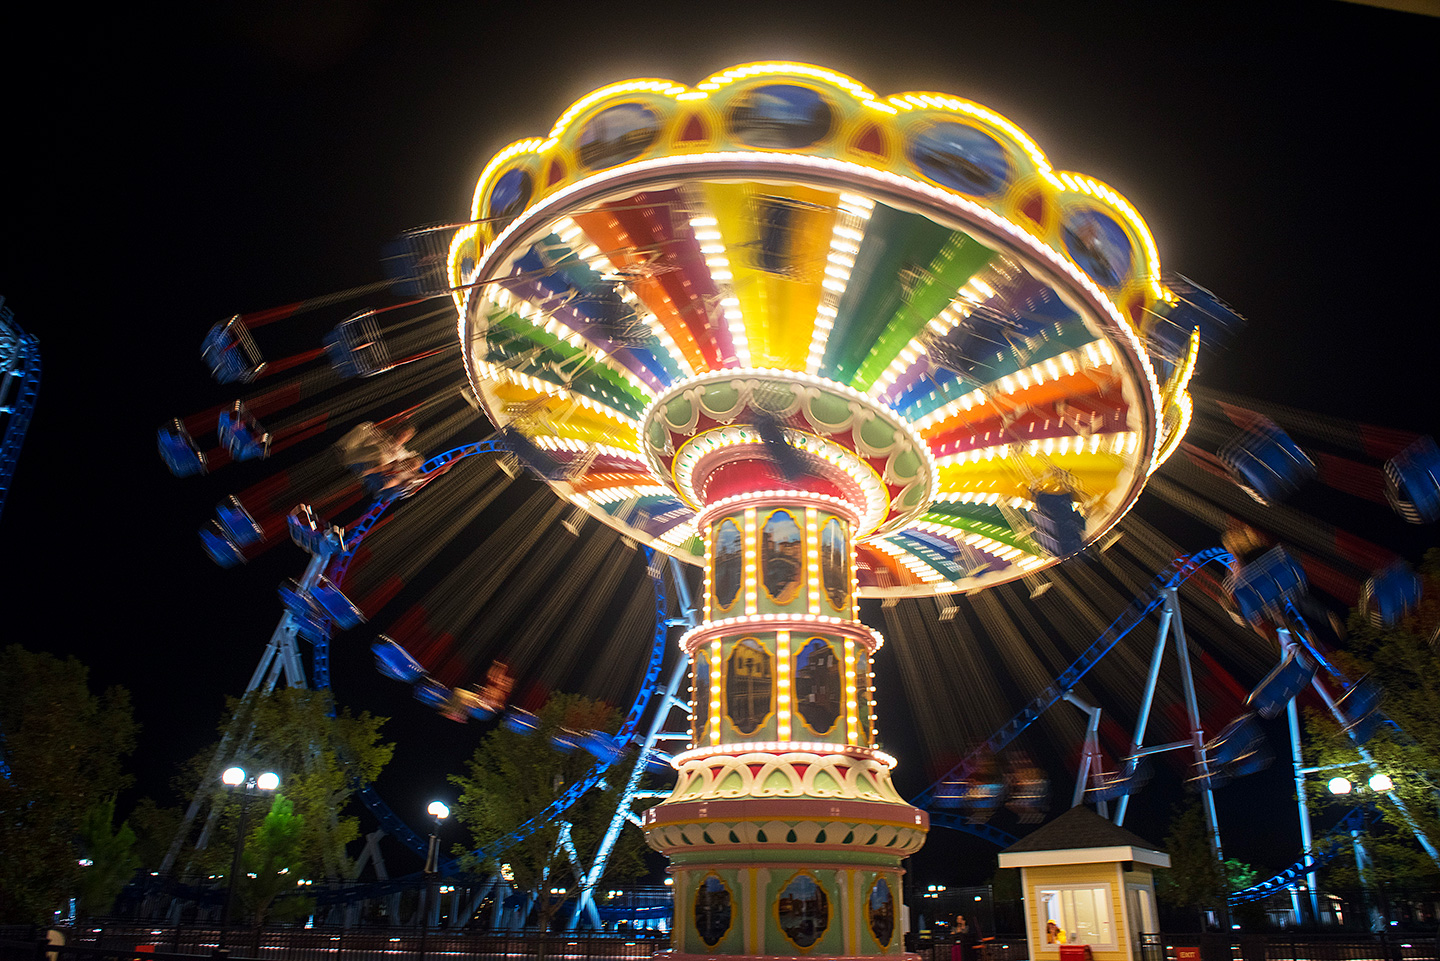 An illuminated carousel in The Park at OWA